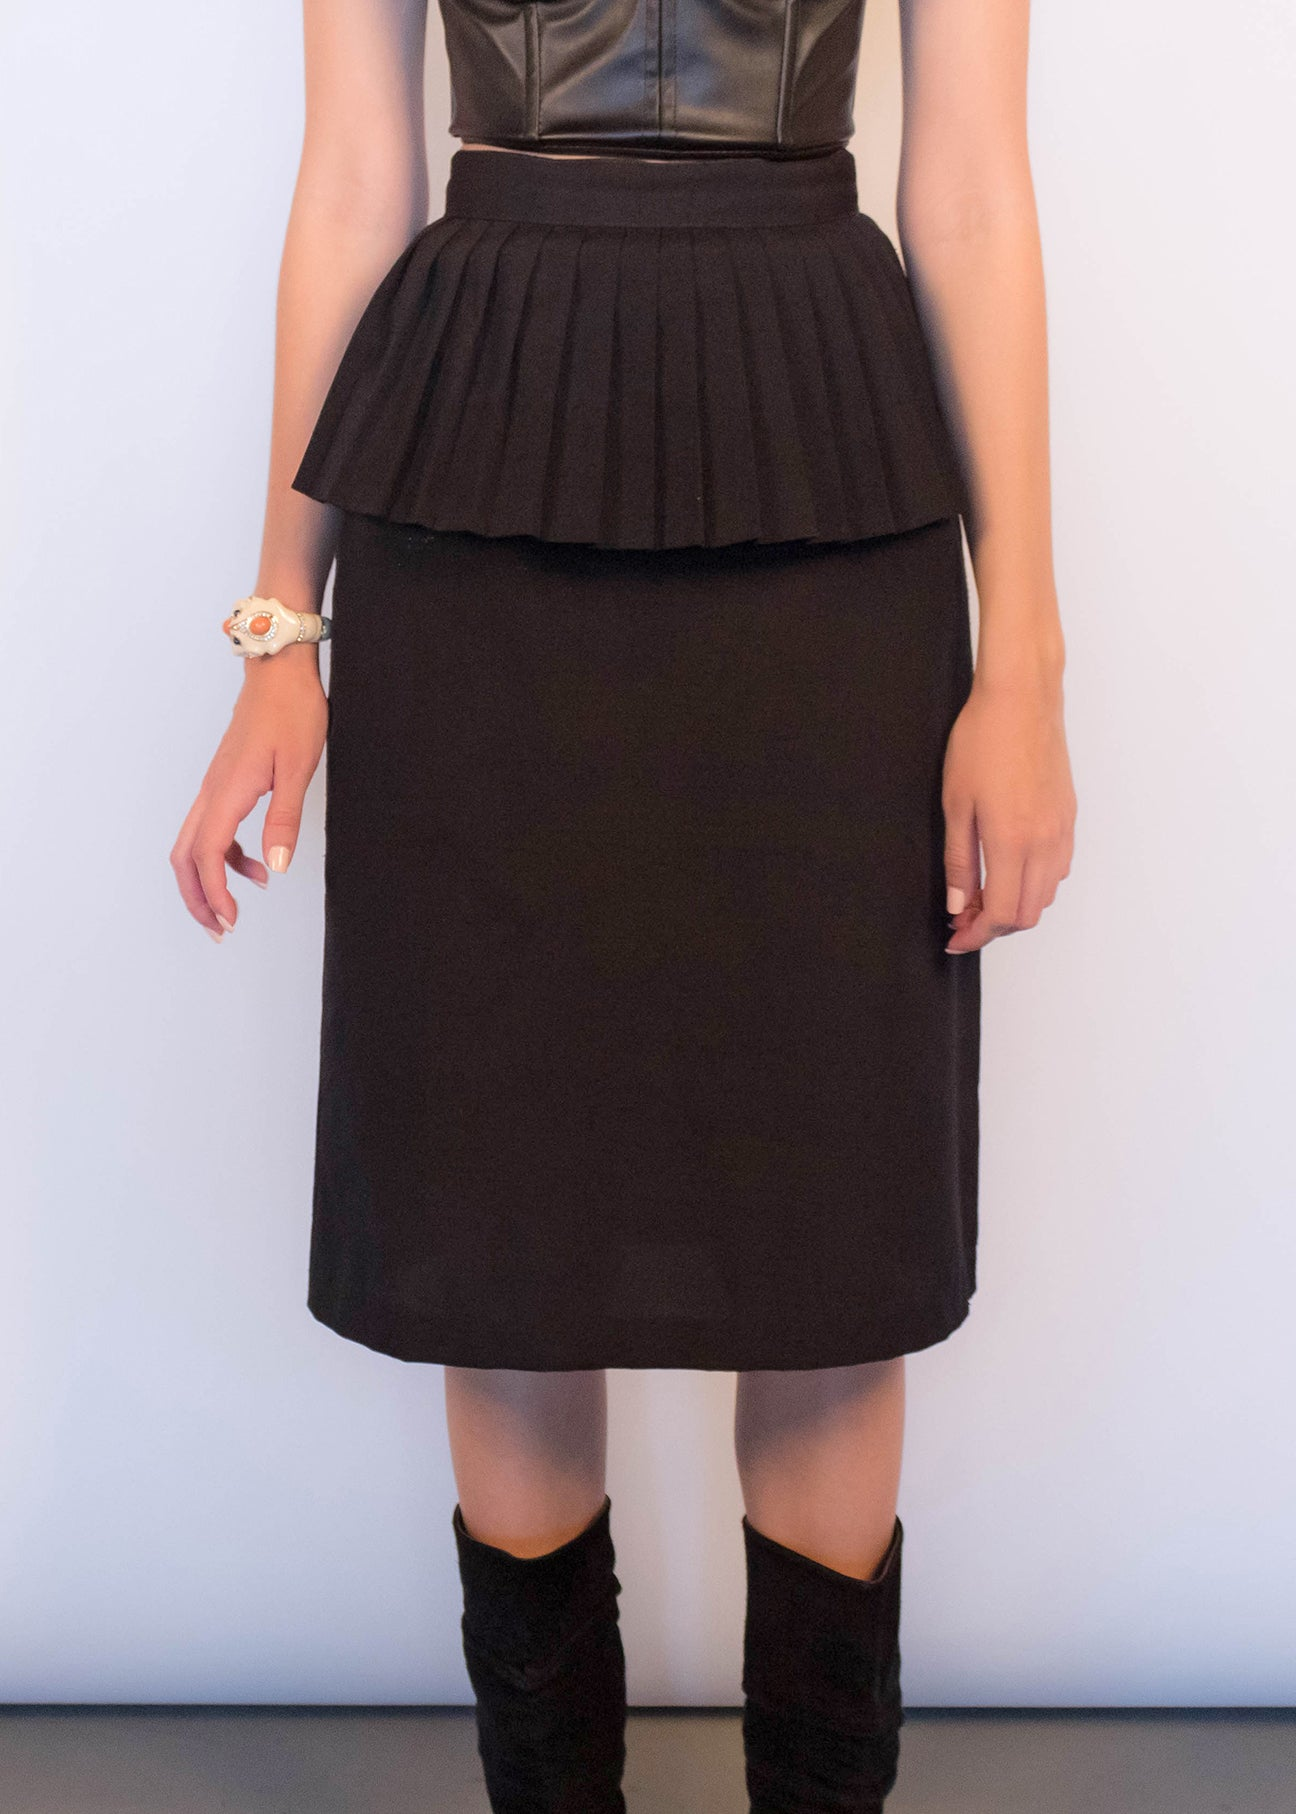 80s Black Peplum Skirt